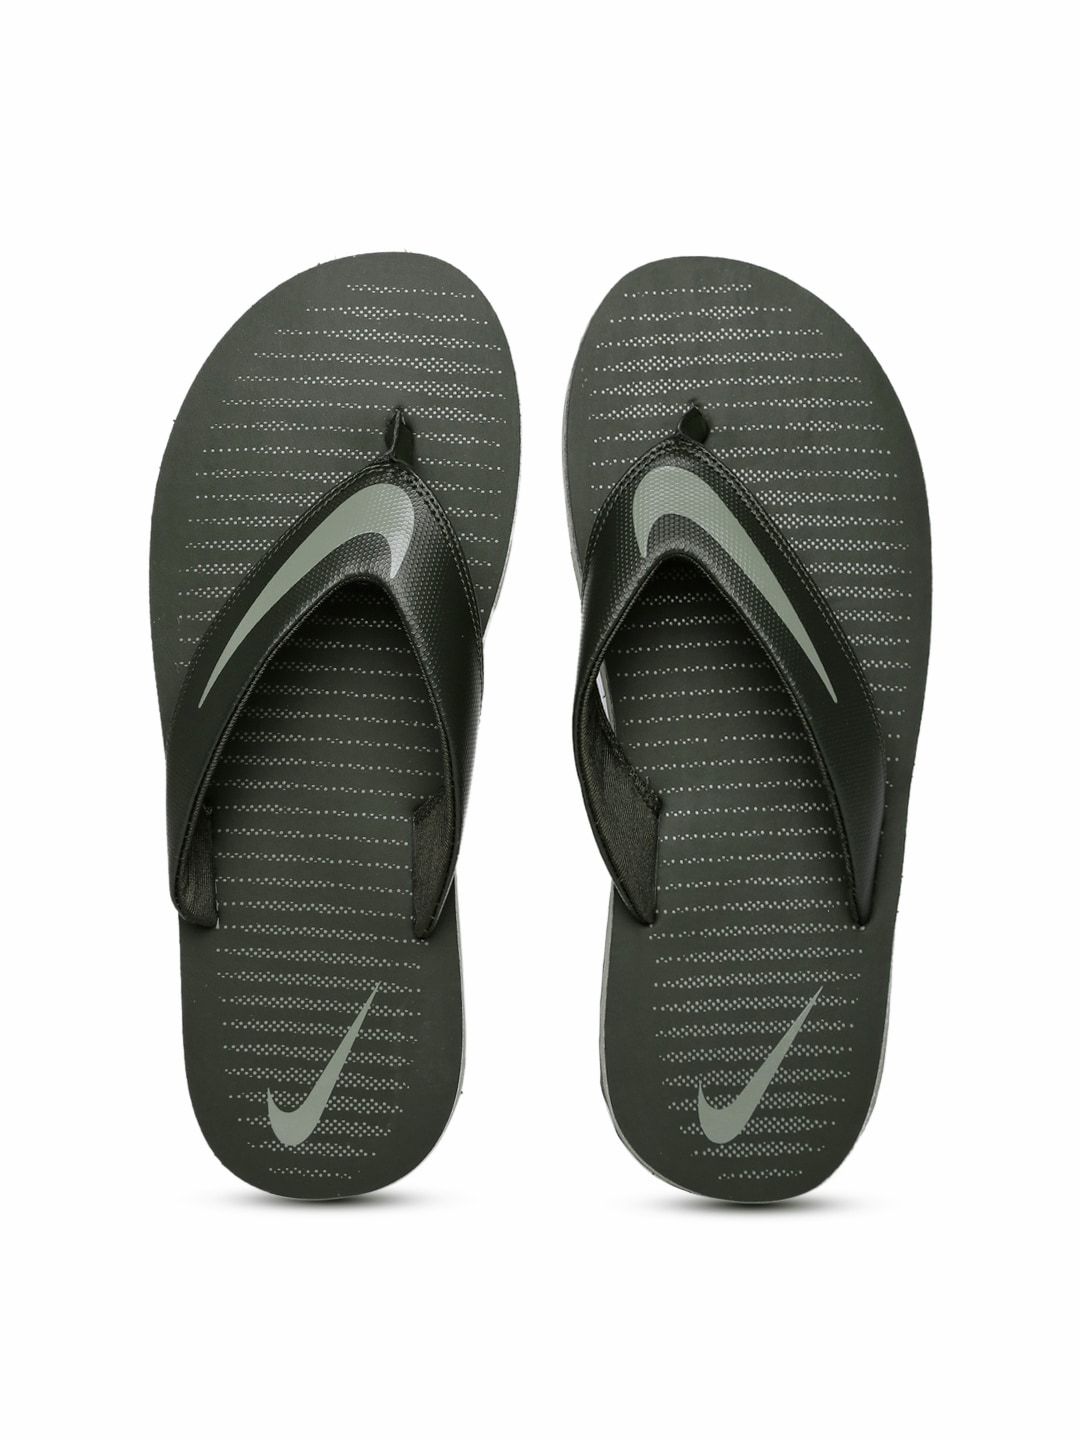 ba994f85182b Flip Flops for Men - Buy Slippers   Flip Flops for Men Online